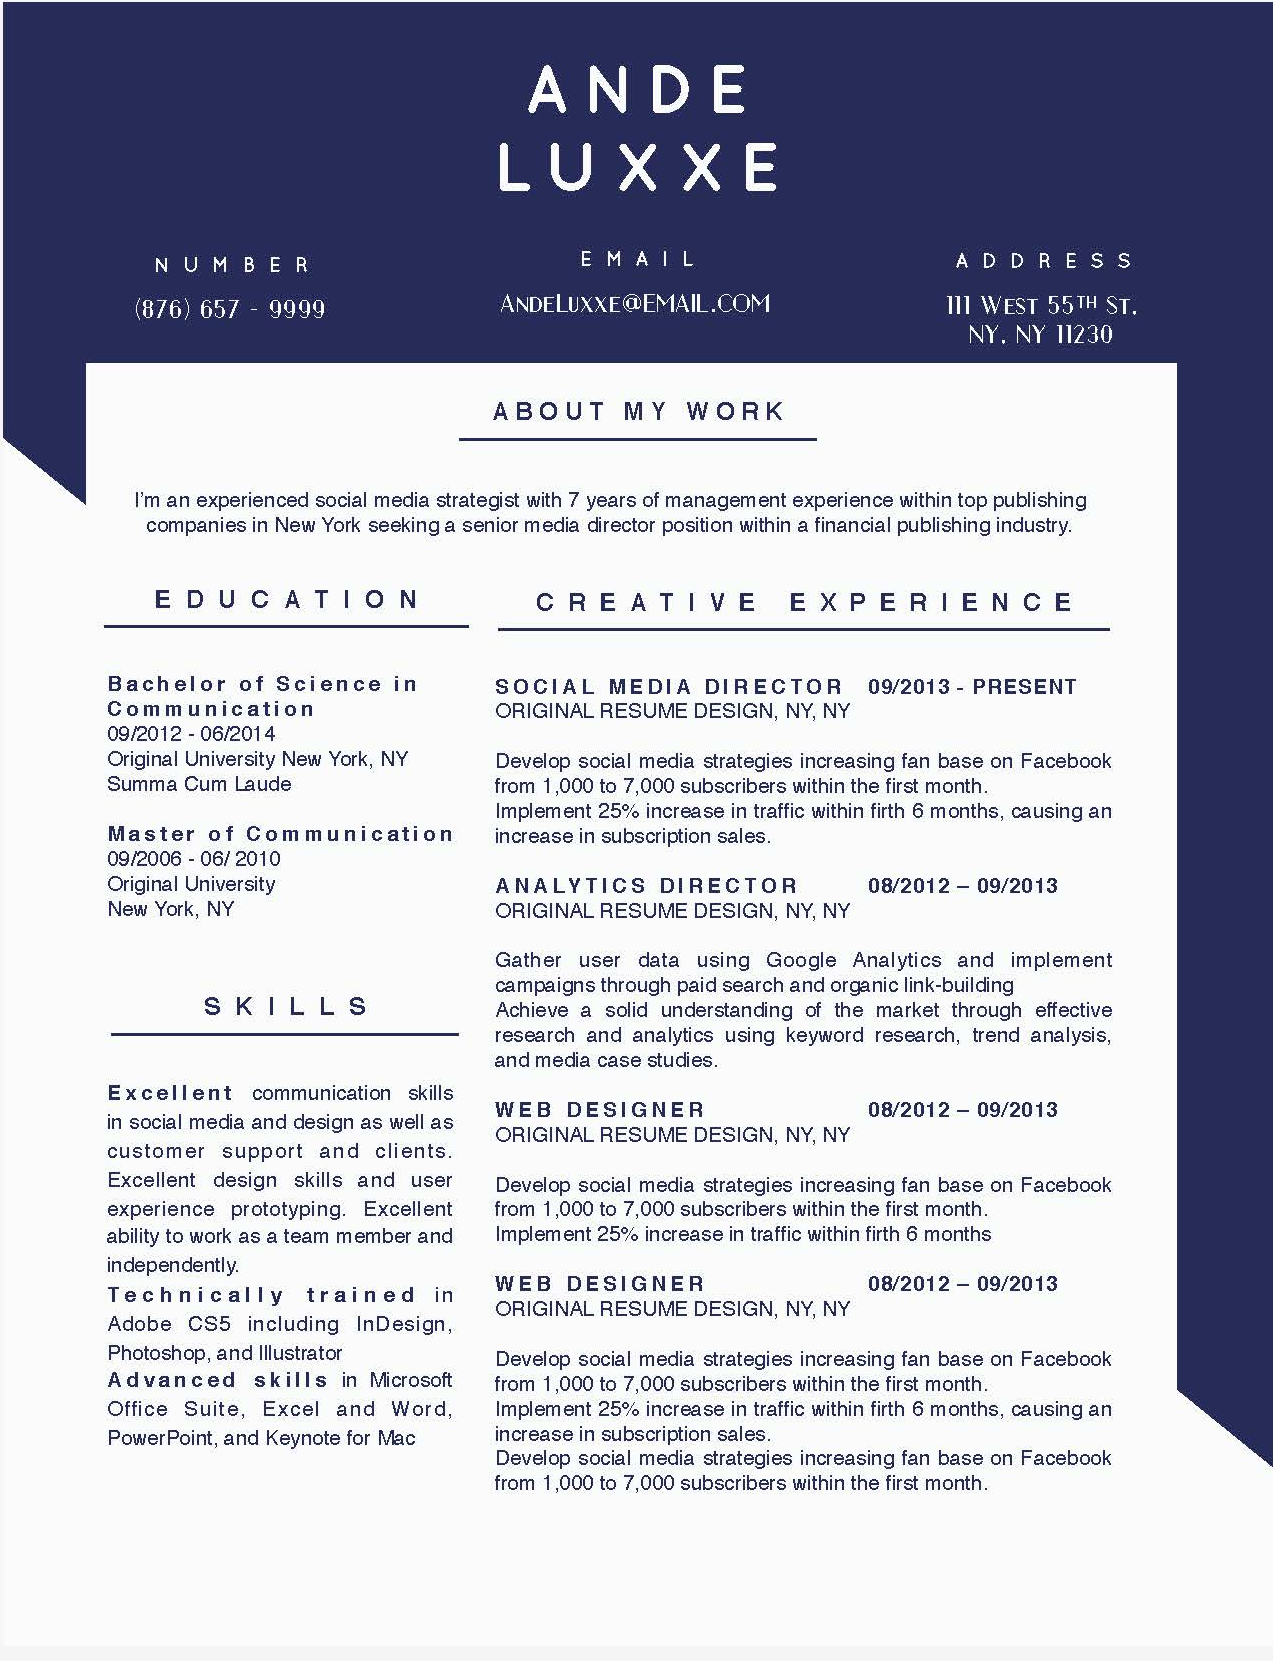 And Luxxe - 3-15 Best Creative Resume Templates of 2018